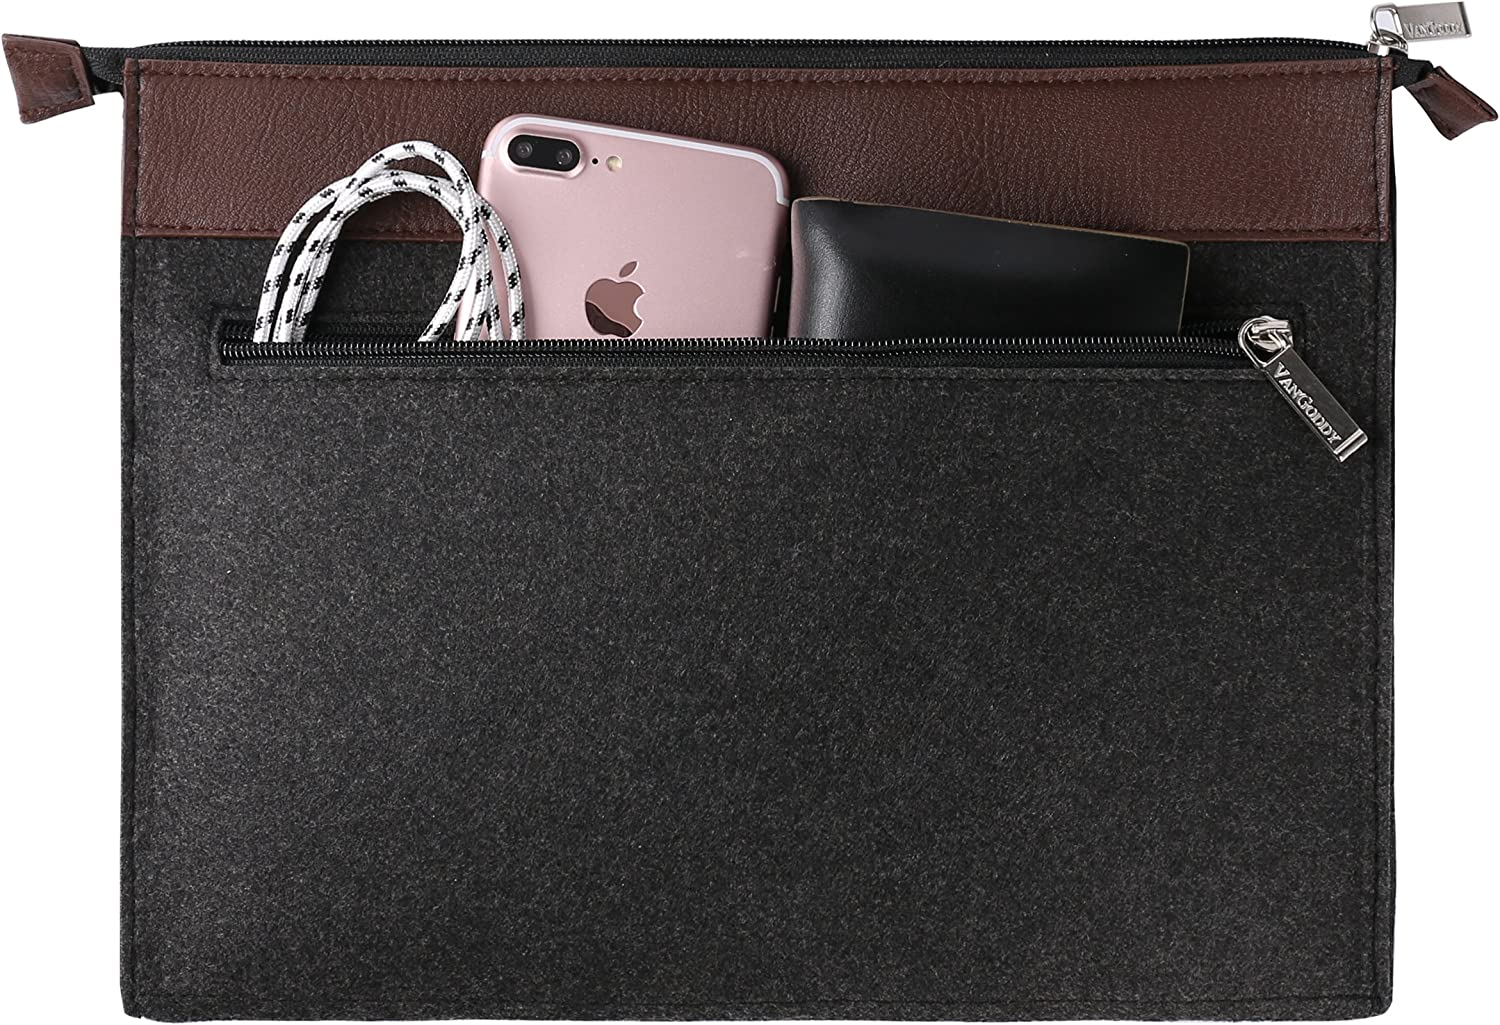 Yoga Series 10.1 inch 12 inch 12.2 inch Tablet with Wireless Mouse and Headphone Vangoddy 10 to 12 Inch Exo Woolen Felt Slim Carrying Case Sleeve Black Trim for Lenovo IdeaPad ThinkPad